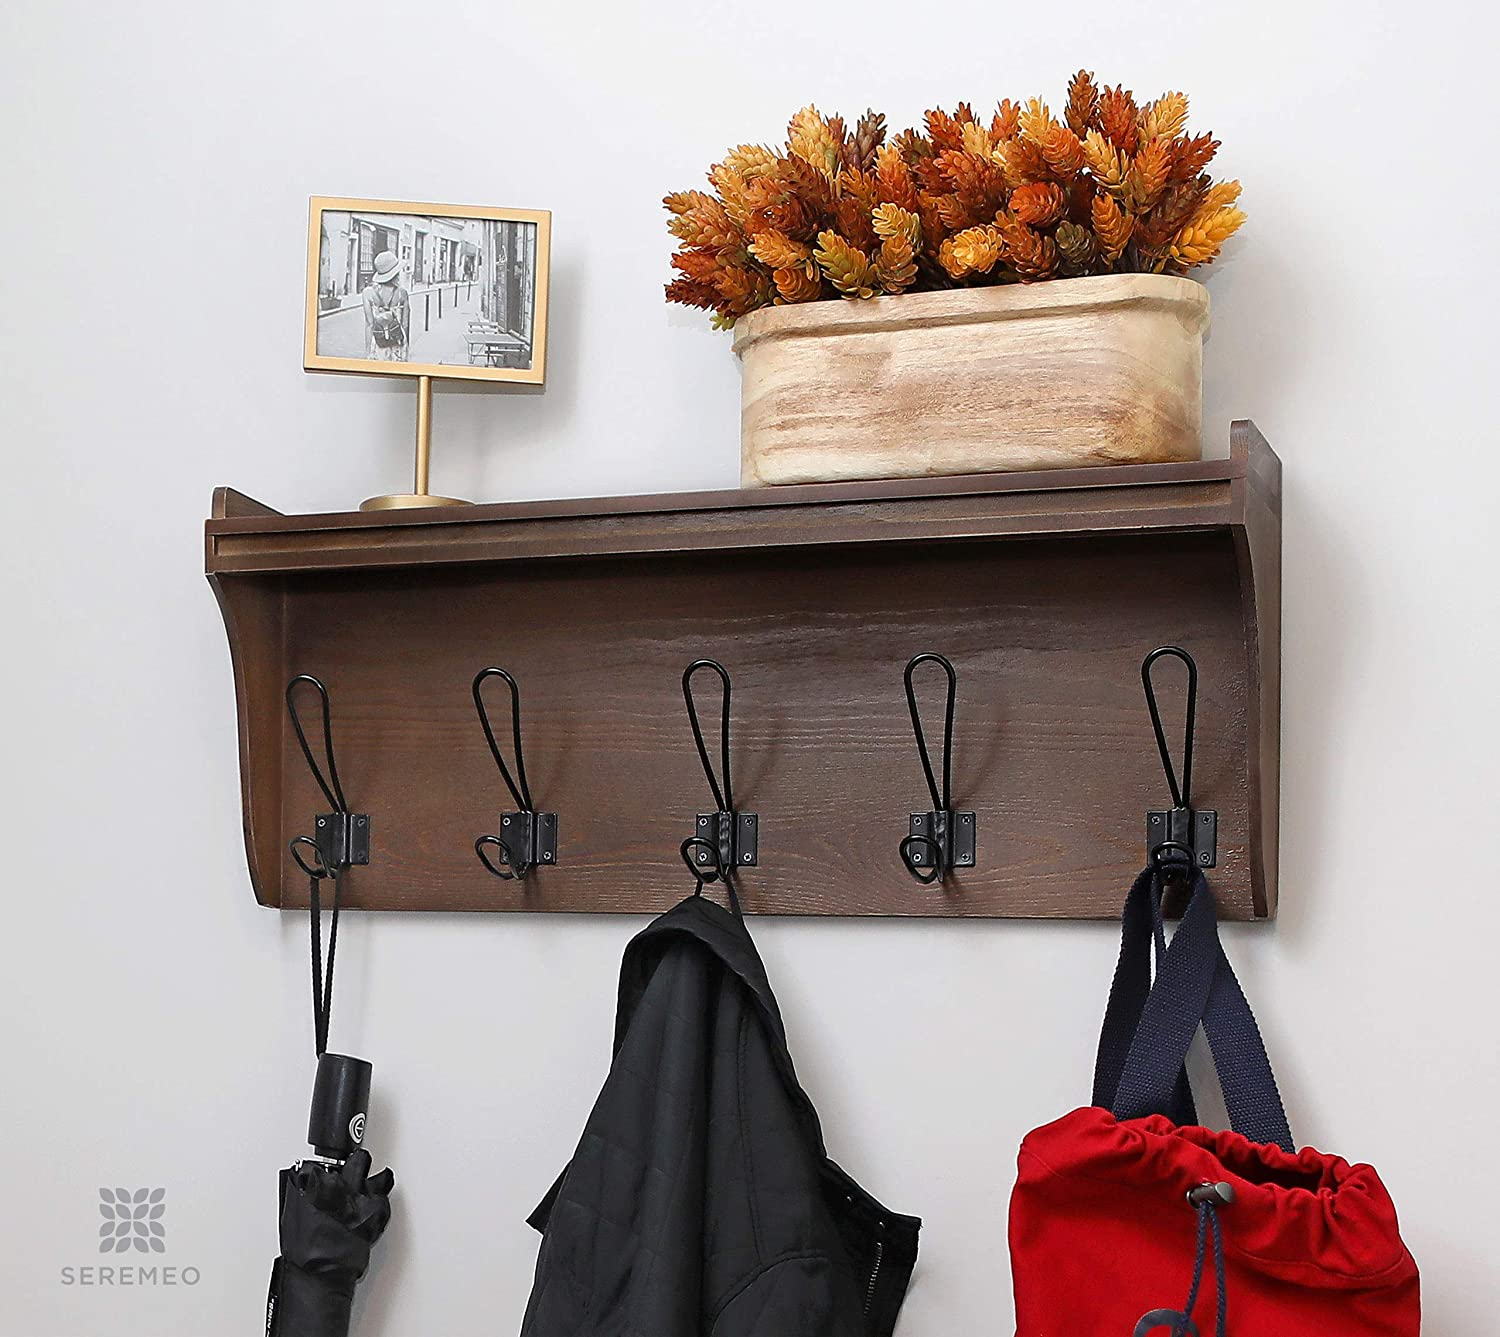 """Seremeo Wall Mounted Coat Rack Shelf – Rustic Brown or Grey 26"""" Entryway Shelf with 5 Coat Hooks - Solid Pine Wood - Ideal for Your Entryway, Mudroom, Bathroom or More."""